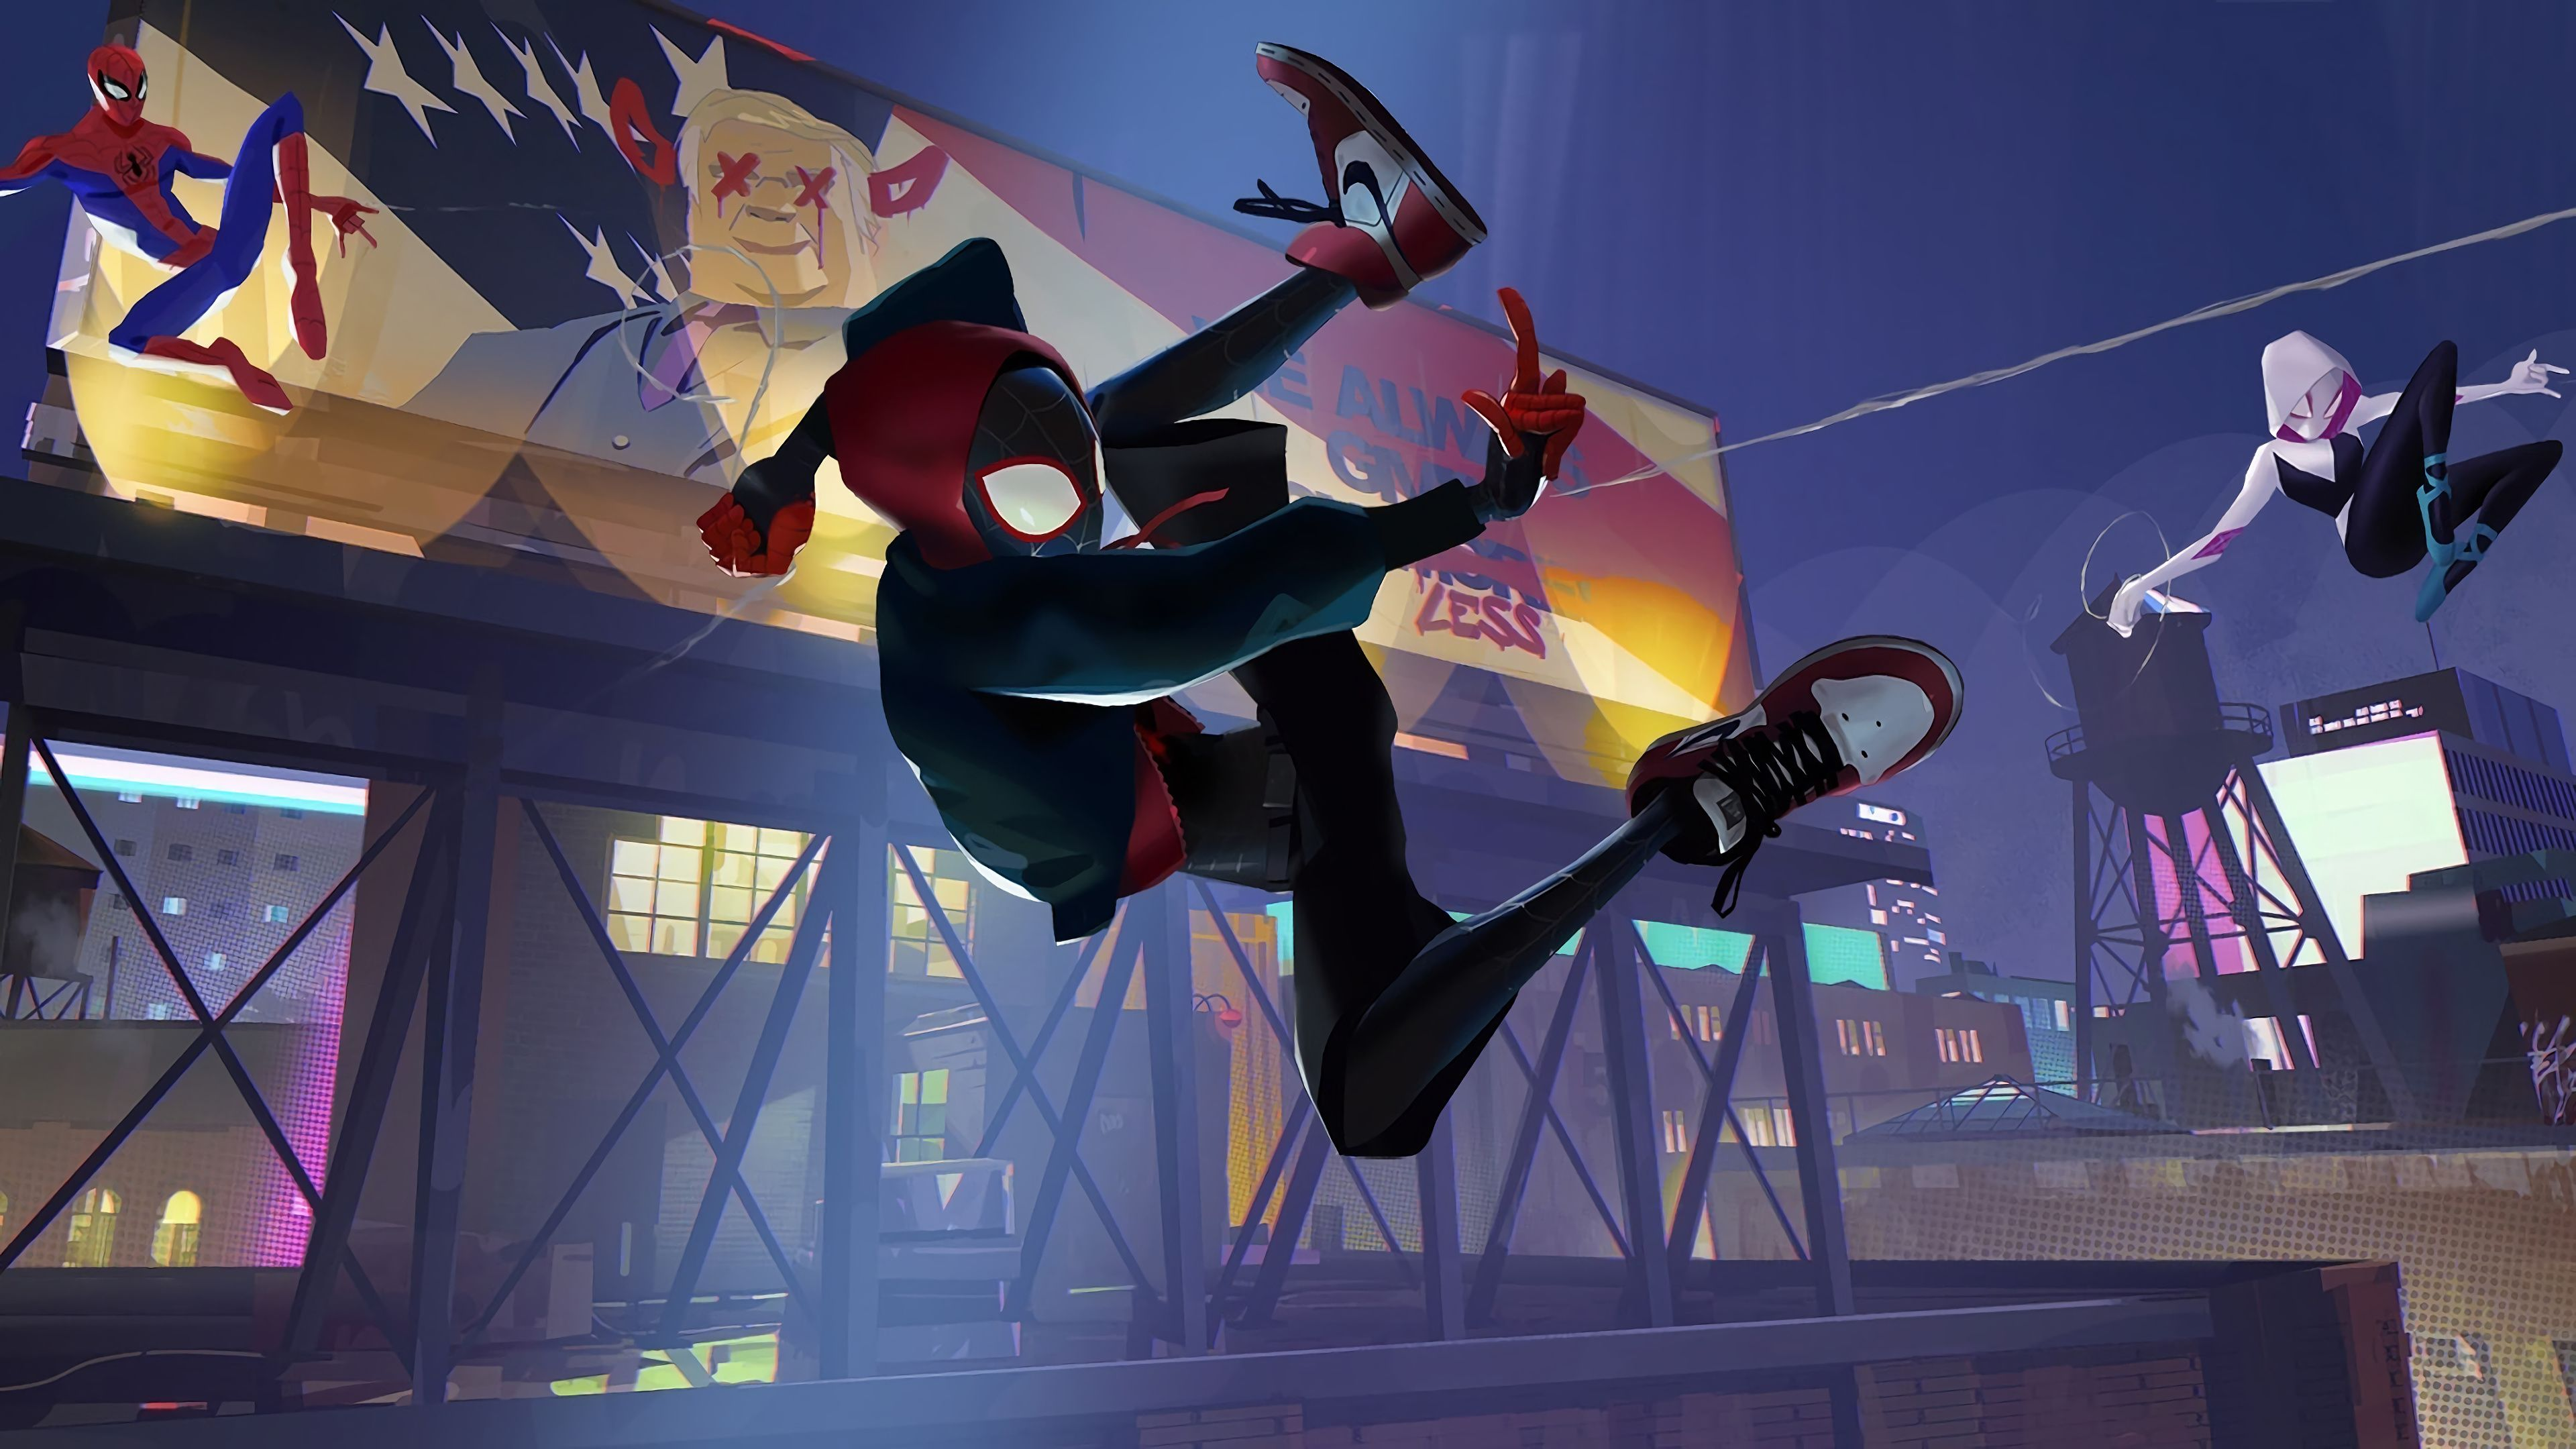 Peter Parker Spiderman Into The Spider Verse 4k Spiderman Wallpapers Spiderman Into The Spider Verse Wallpapers Movies W Marvel Images Spider Verse Spiderman